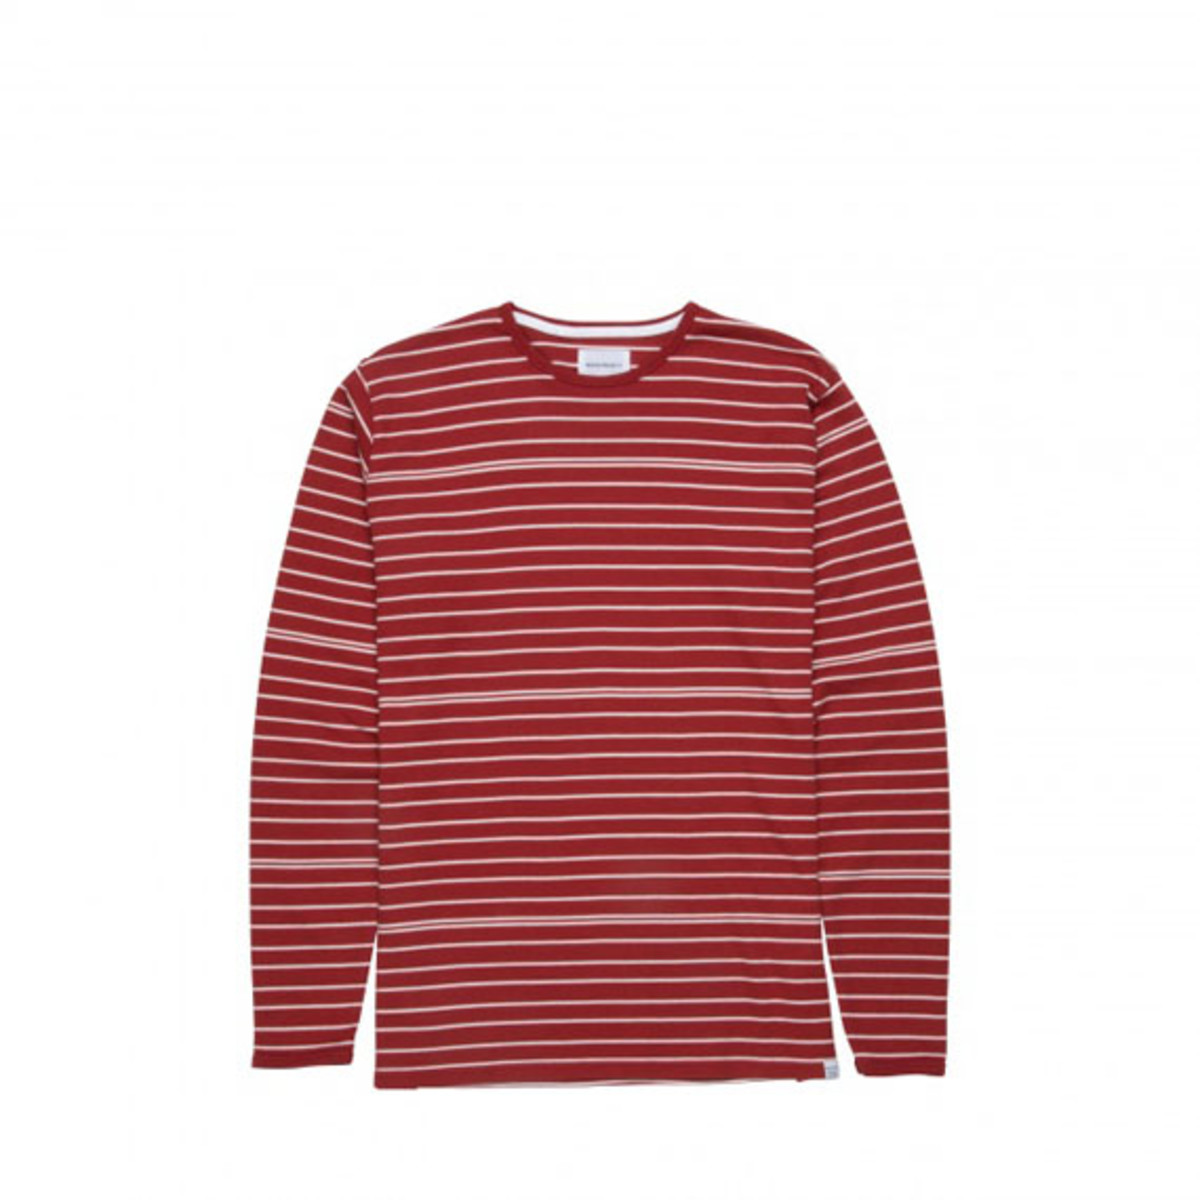 norse-projects-fall-winter-2013-collection-05